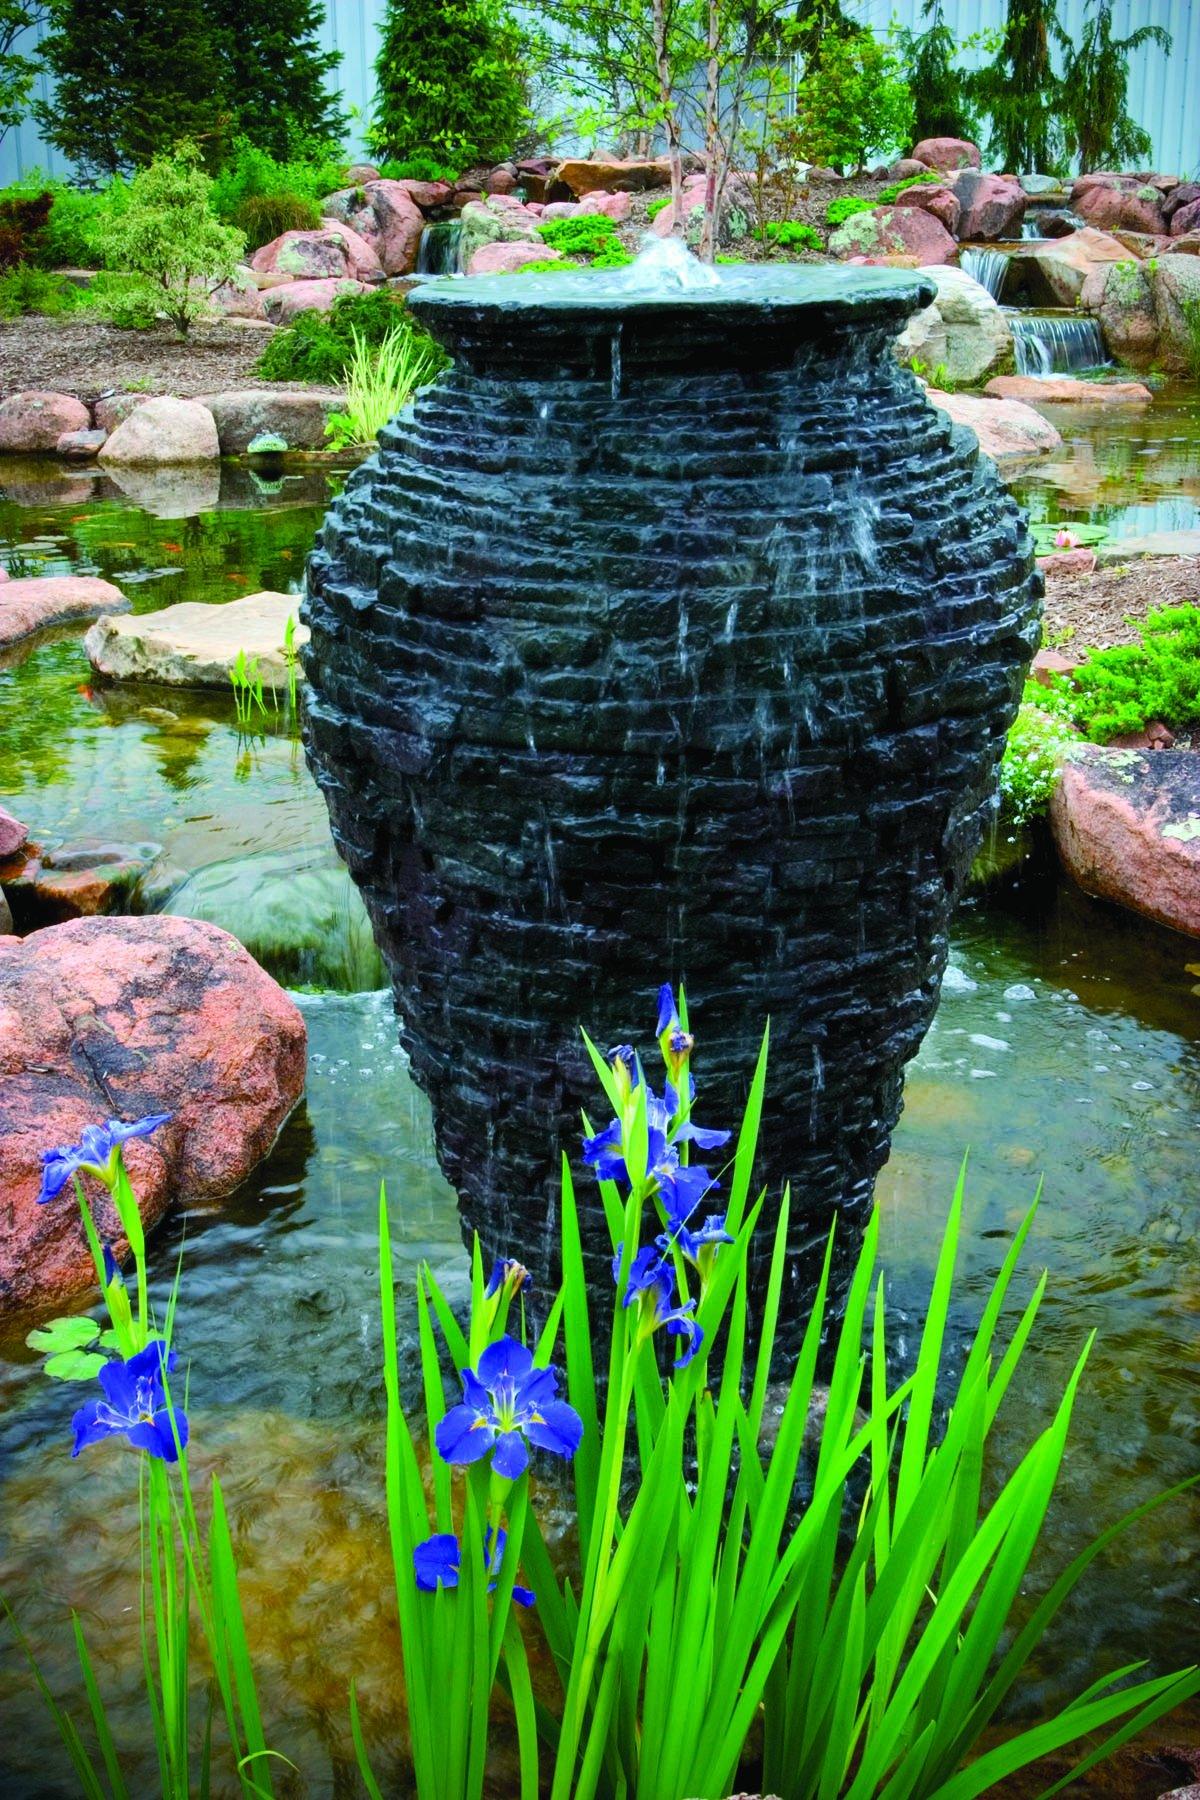 Aquascape 98940 Large Stacked Slate Urn Fountain for Landscape and Gardens, 56-1/2 Inches Tall